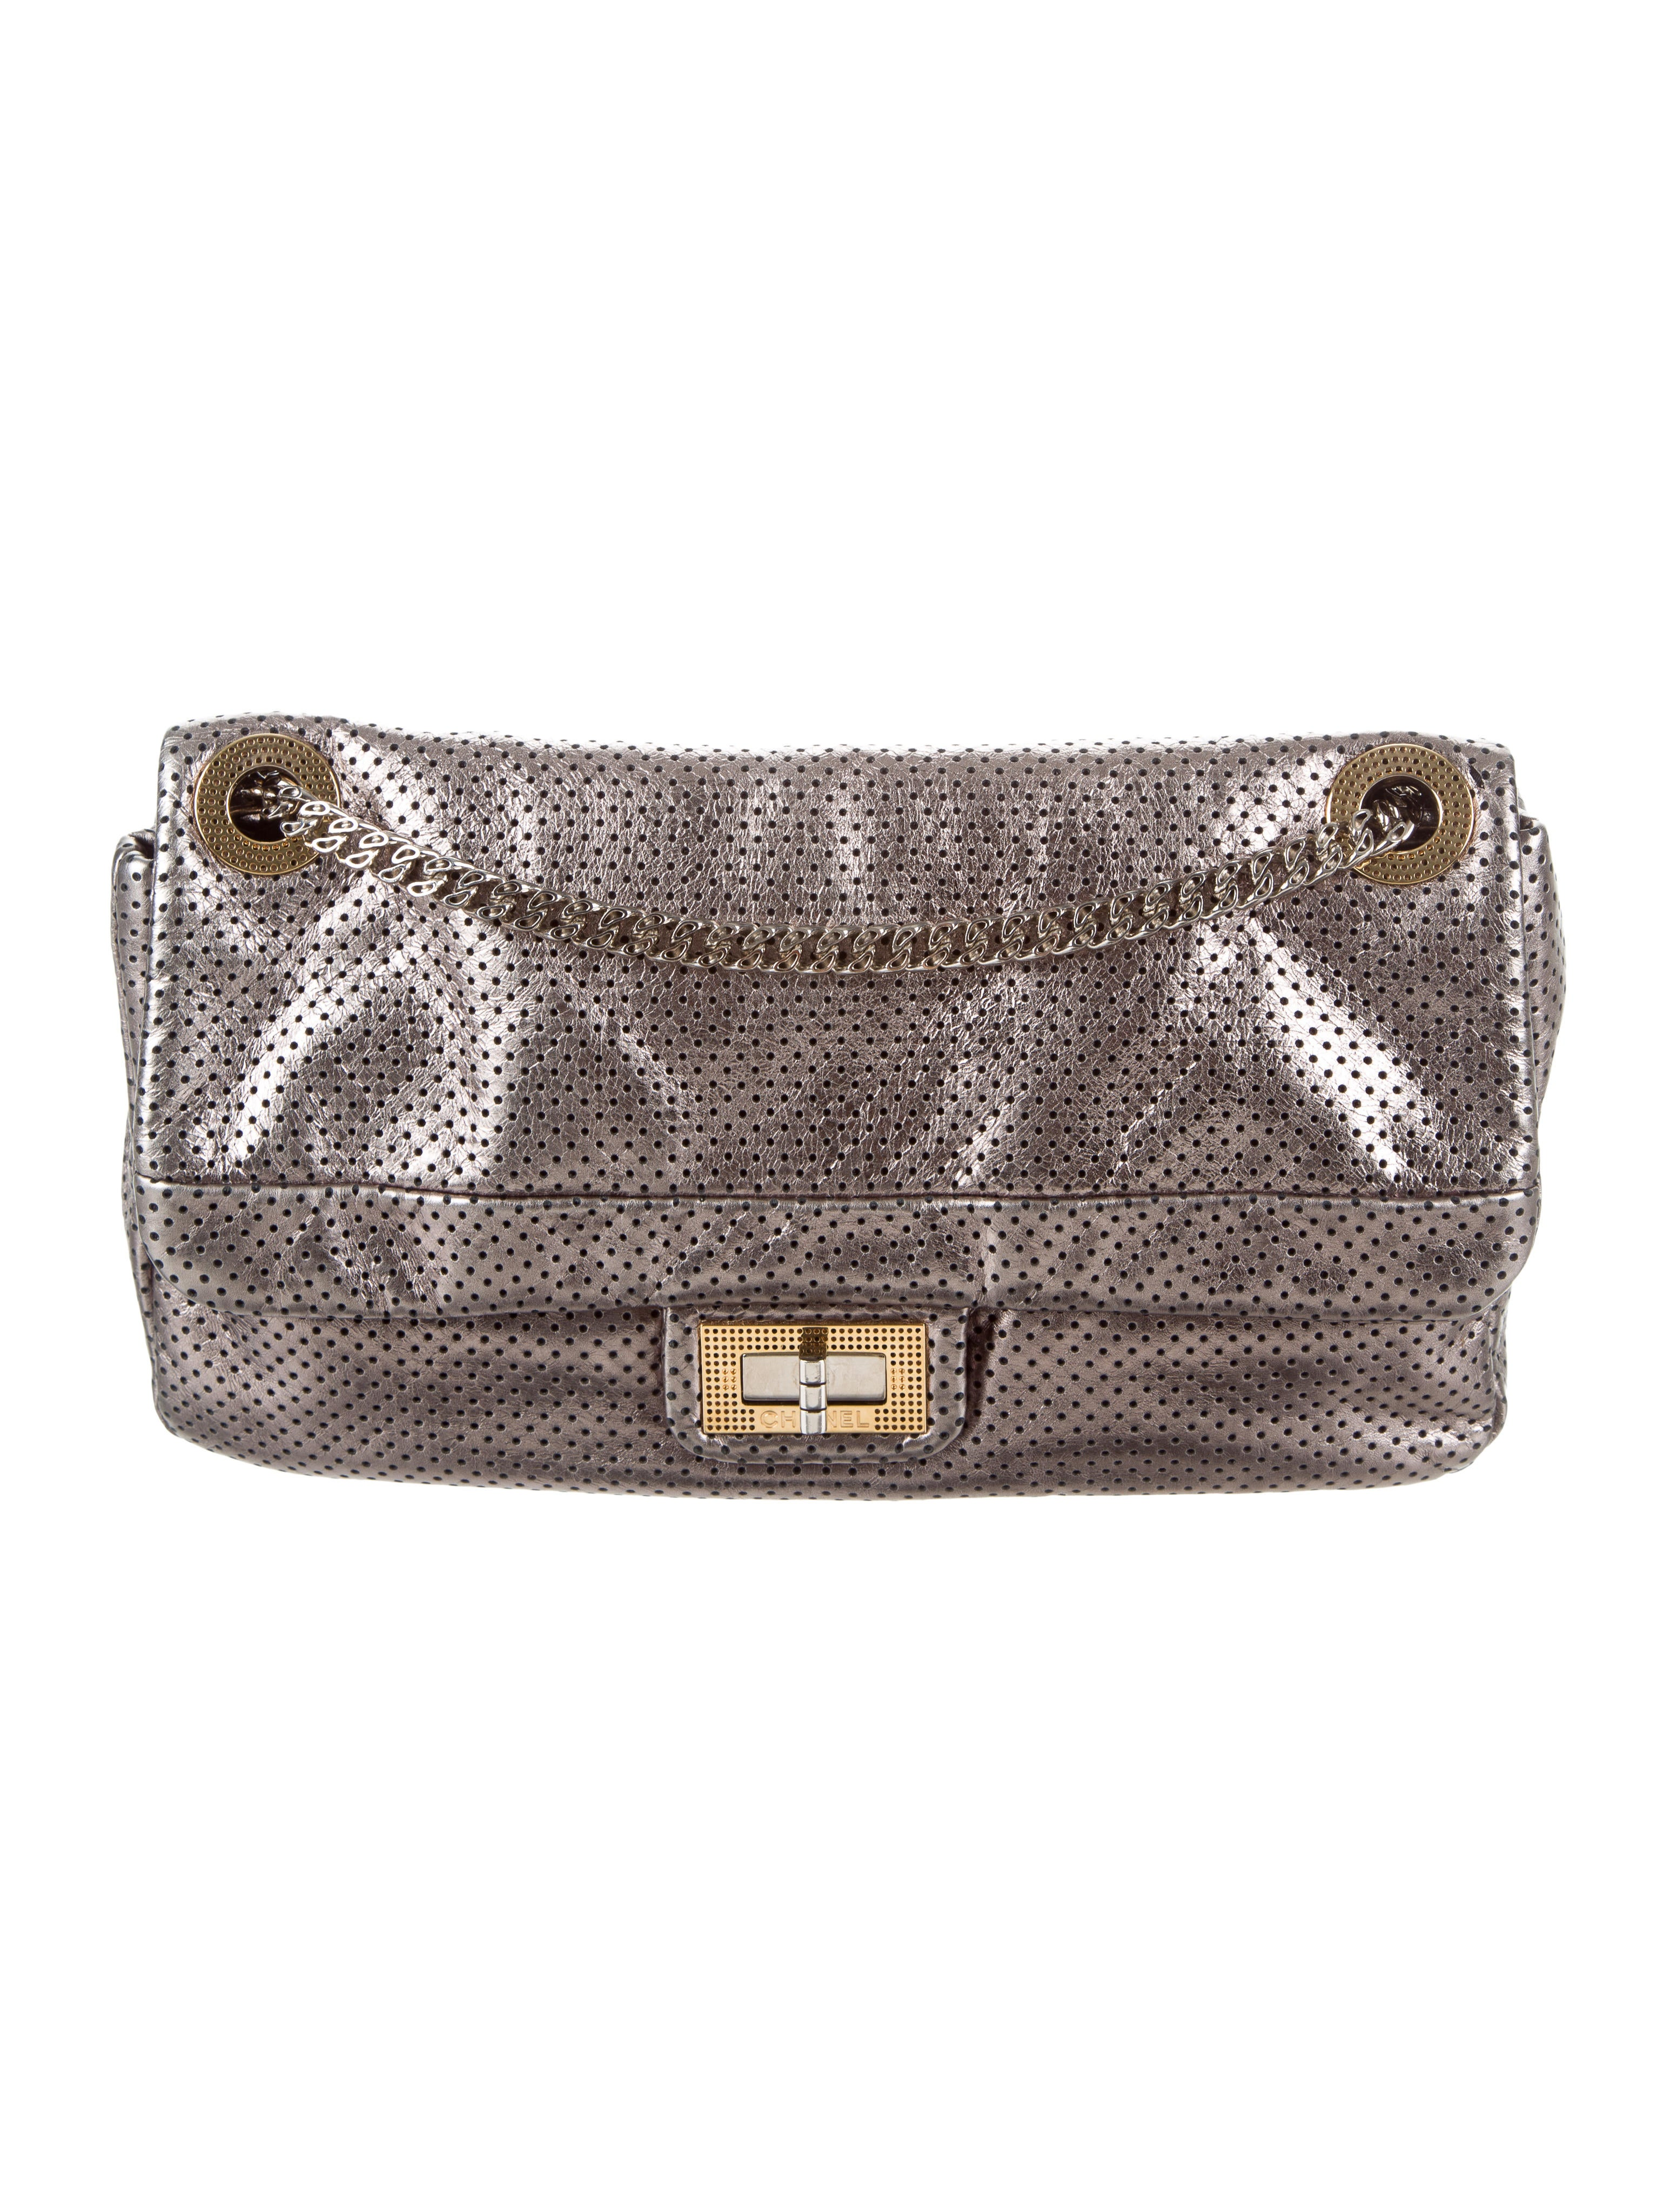 460ab1e48778af Chanel Perforated Drill Flap Bag - Handbags - CHA202467 | The RealReal